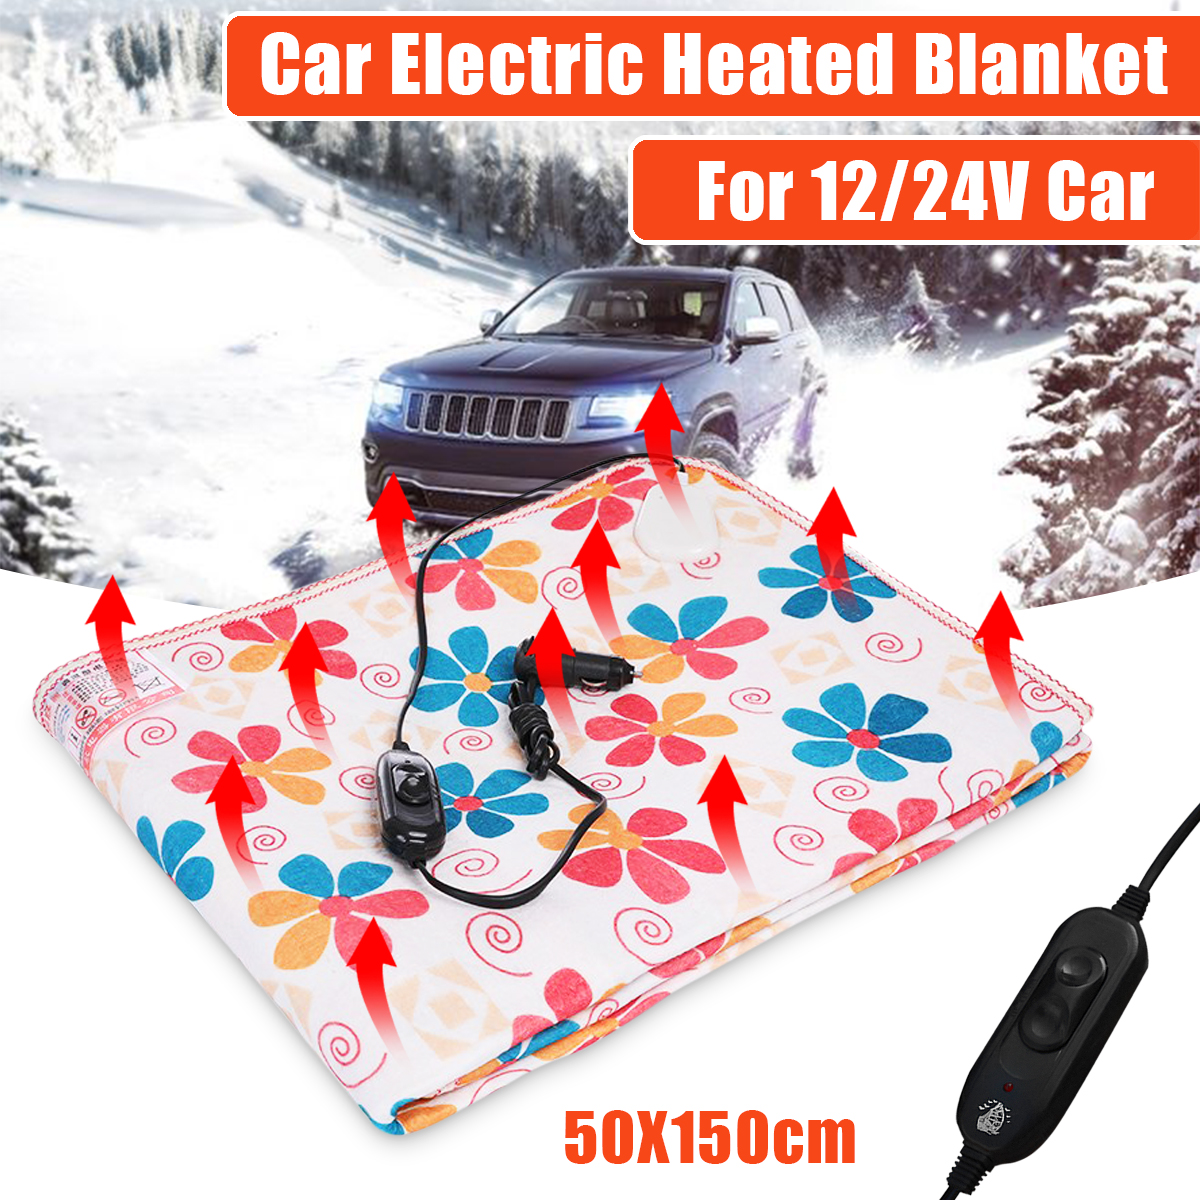 and Emergency Kits Black//White Electric Car Blanket Heated 12 Volt Fleece Travel Throw for Car and RV-Great for Cold Weather Tailgating